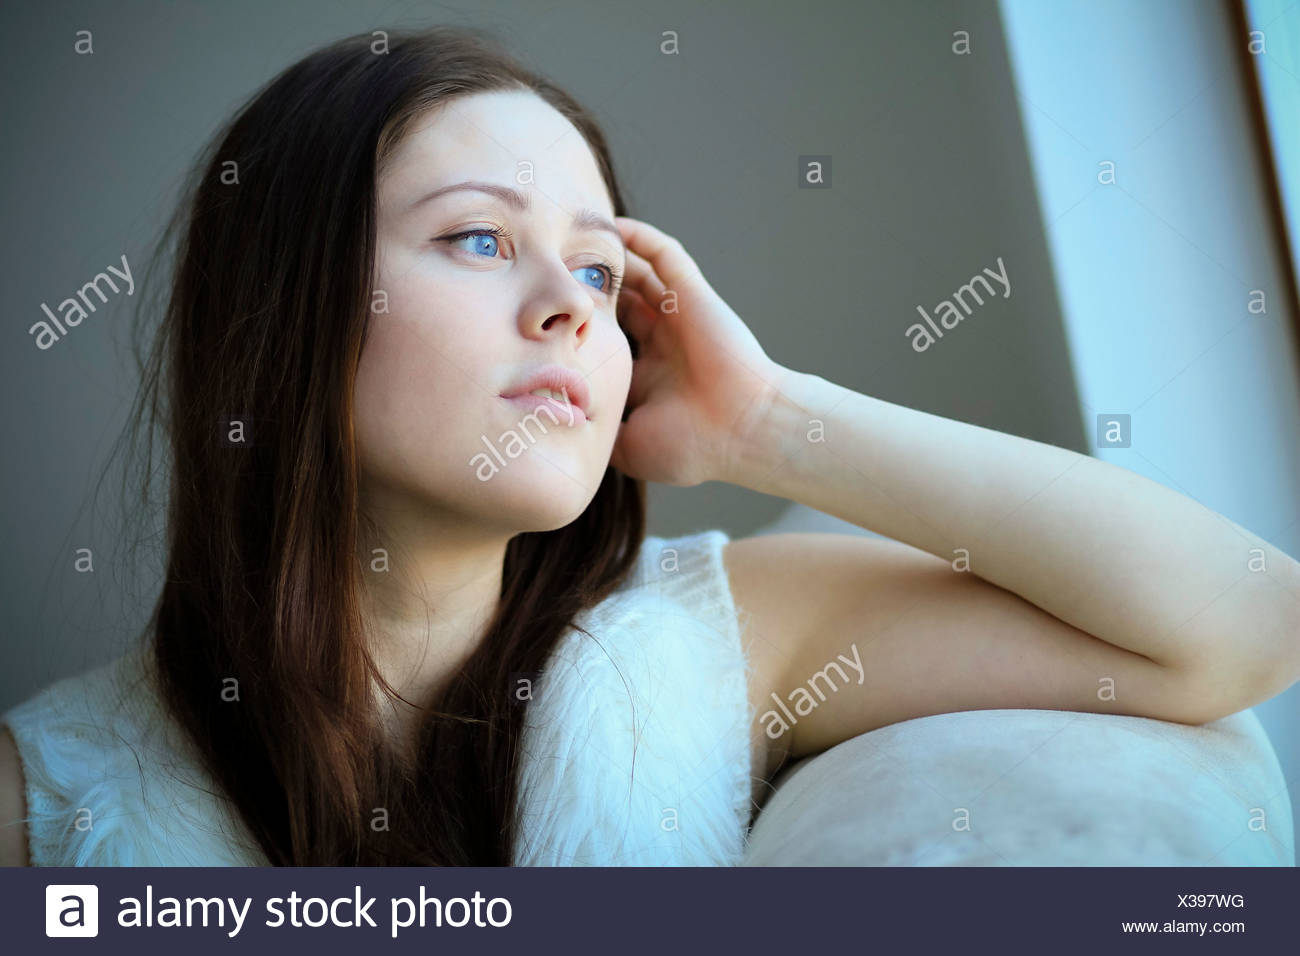 Woman with brown hair, day dreaming, Copenhagen, Denmark - Stock Image